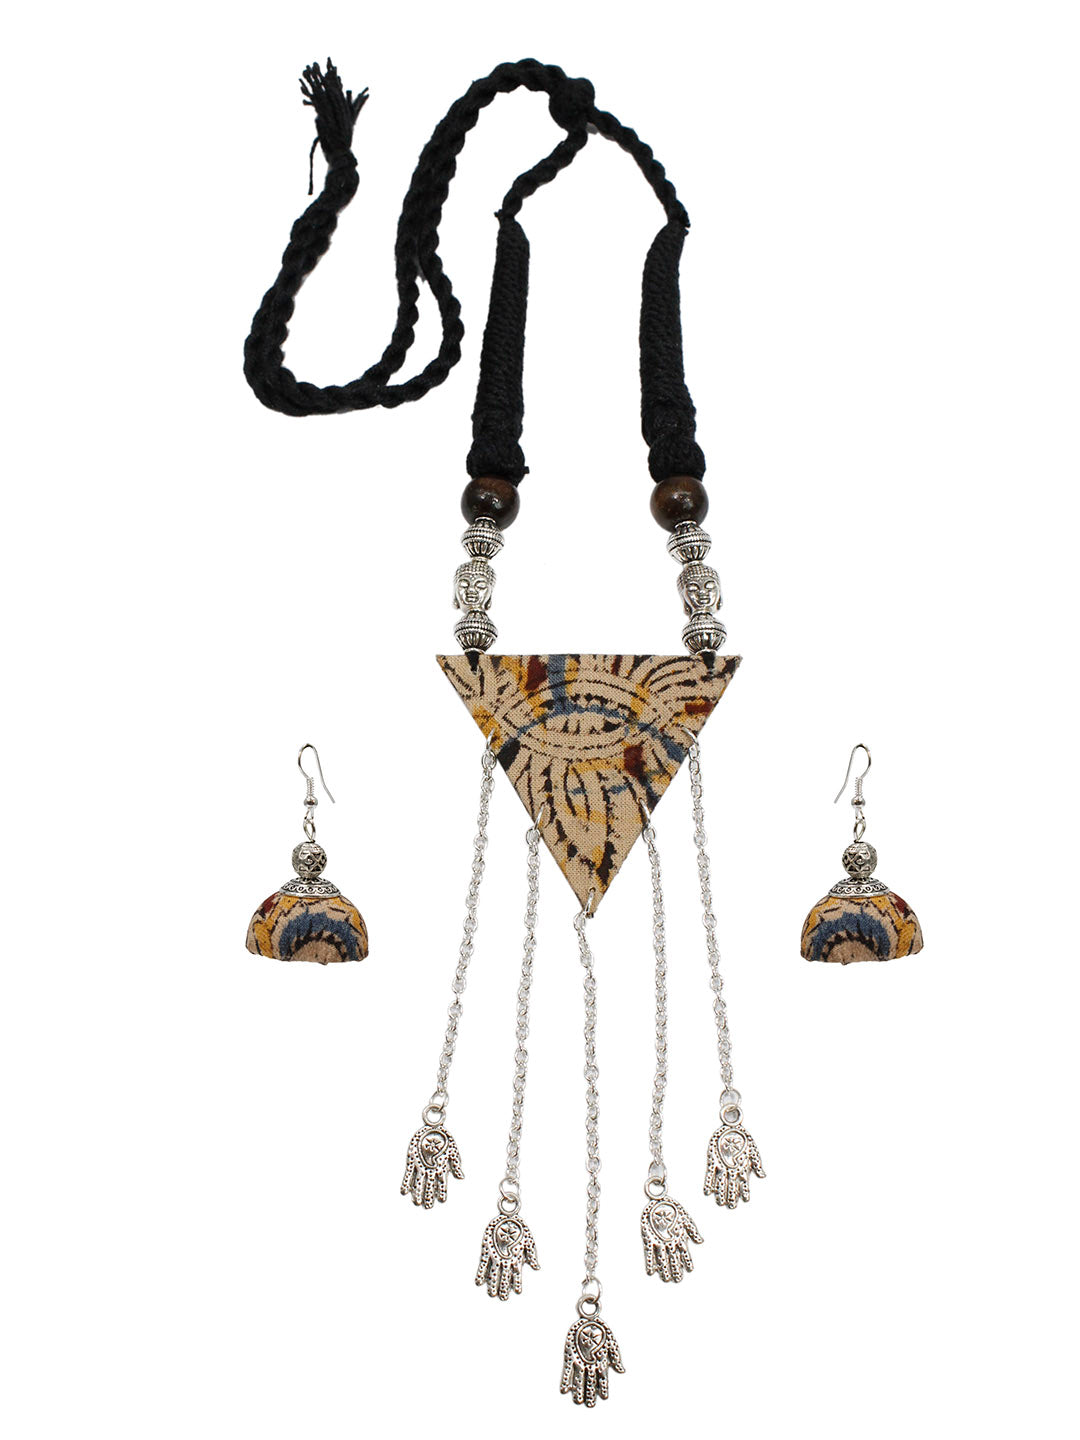 Kalamkari Fabric Printed Triangle Pendant Design Handmade Necklace Set